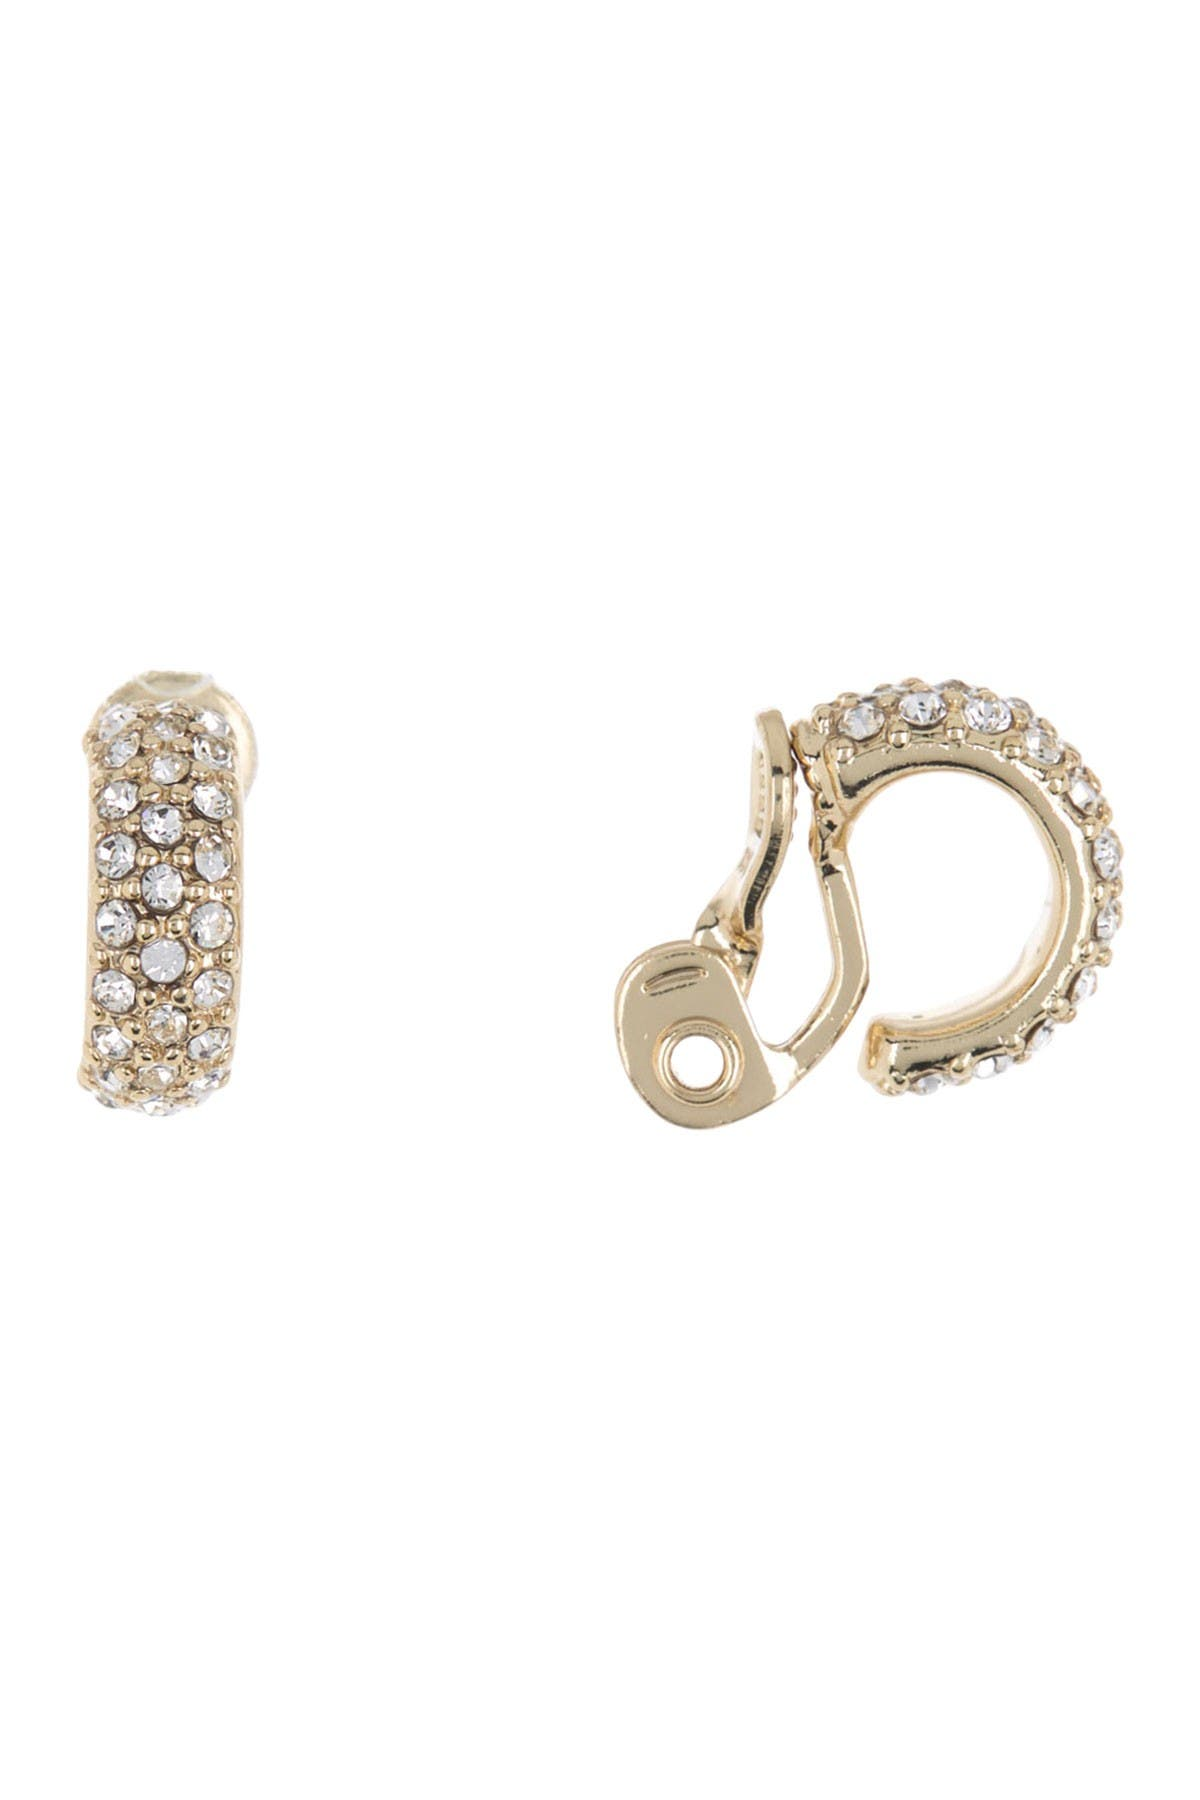 Image of Lauren Ralph Lauren CZ Clip-On Huggie Hoop Earrings